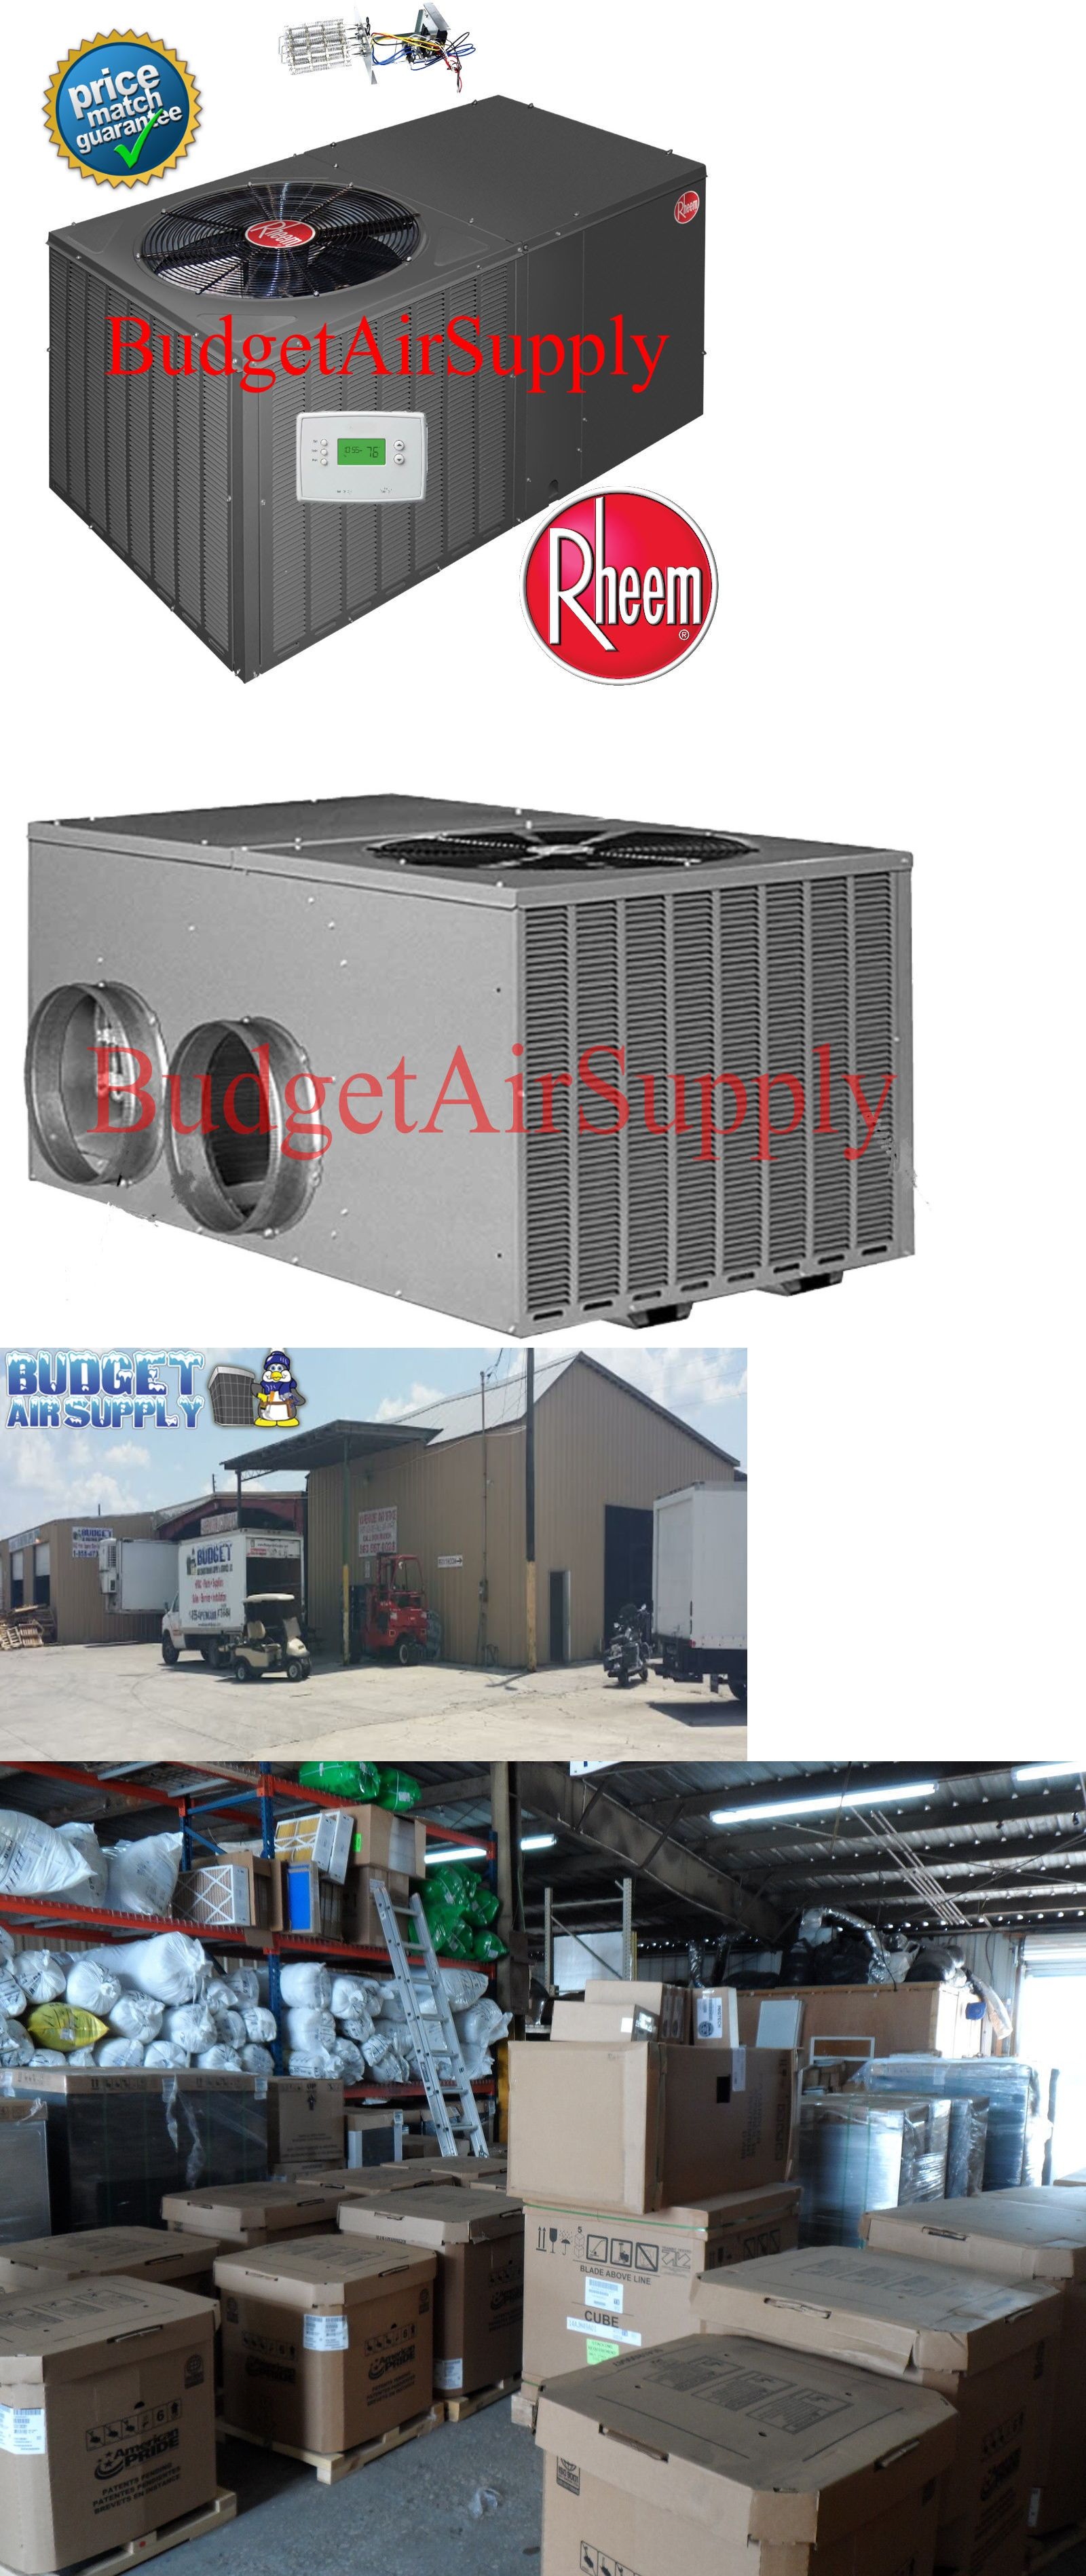 Central Air Conditioners 185108 Rheem 4 Ton 14 Seer R410